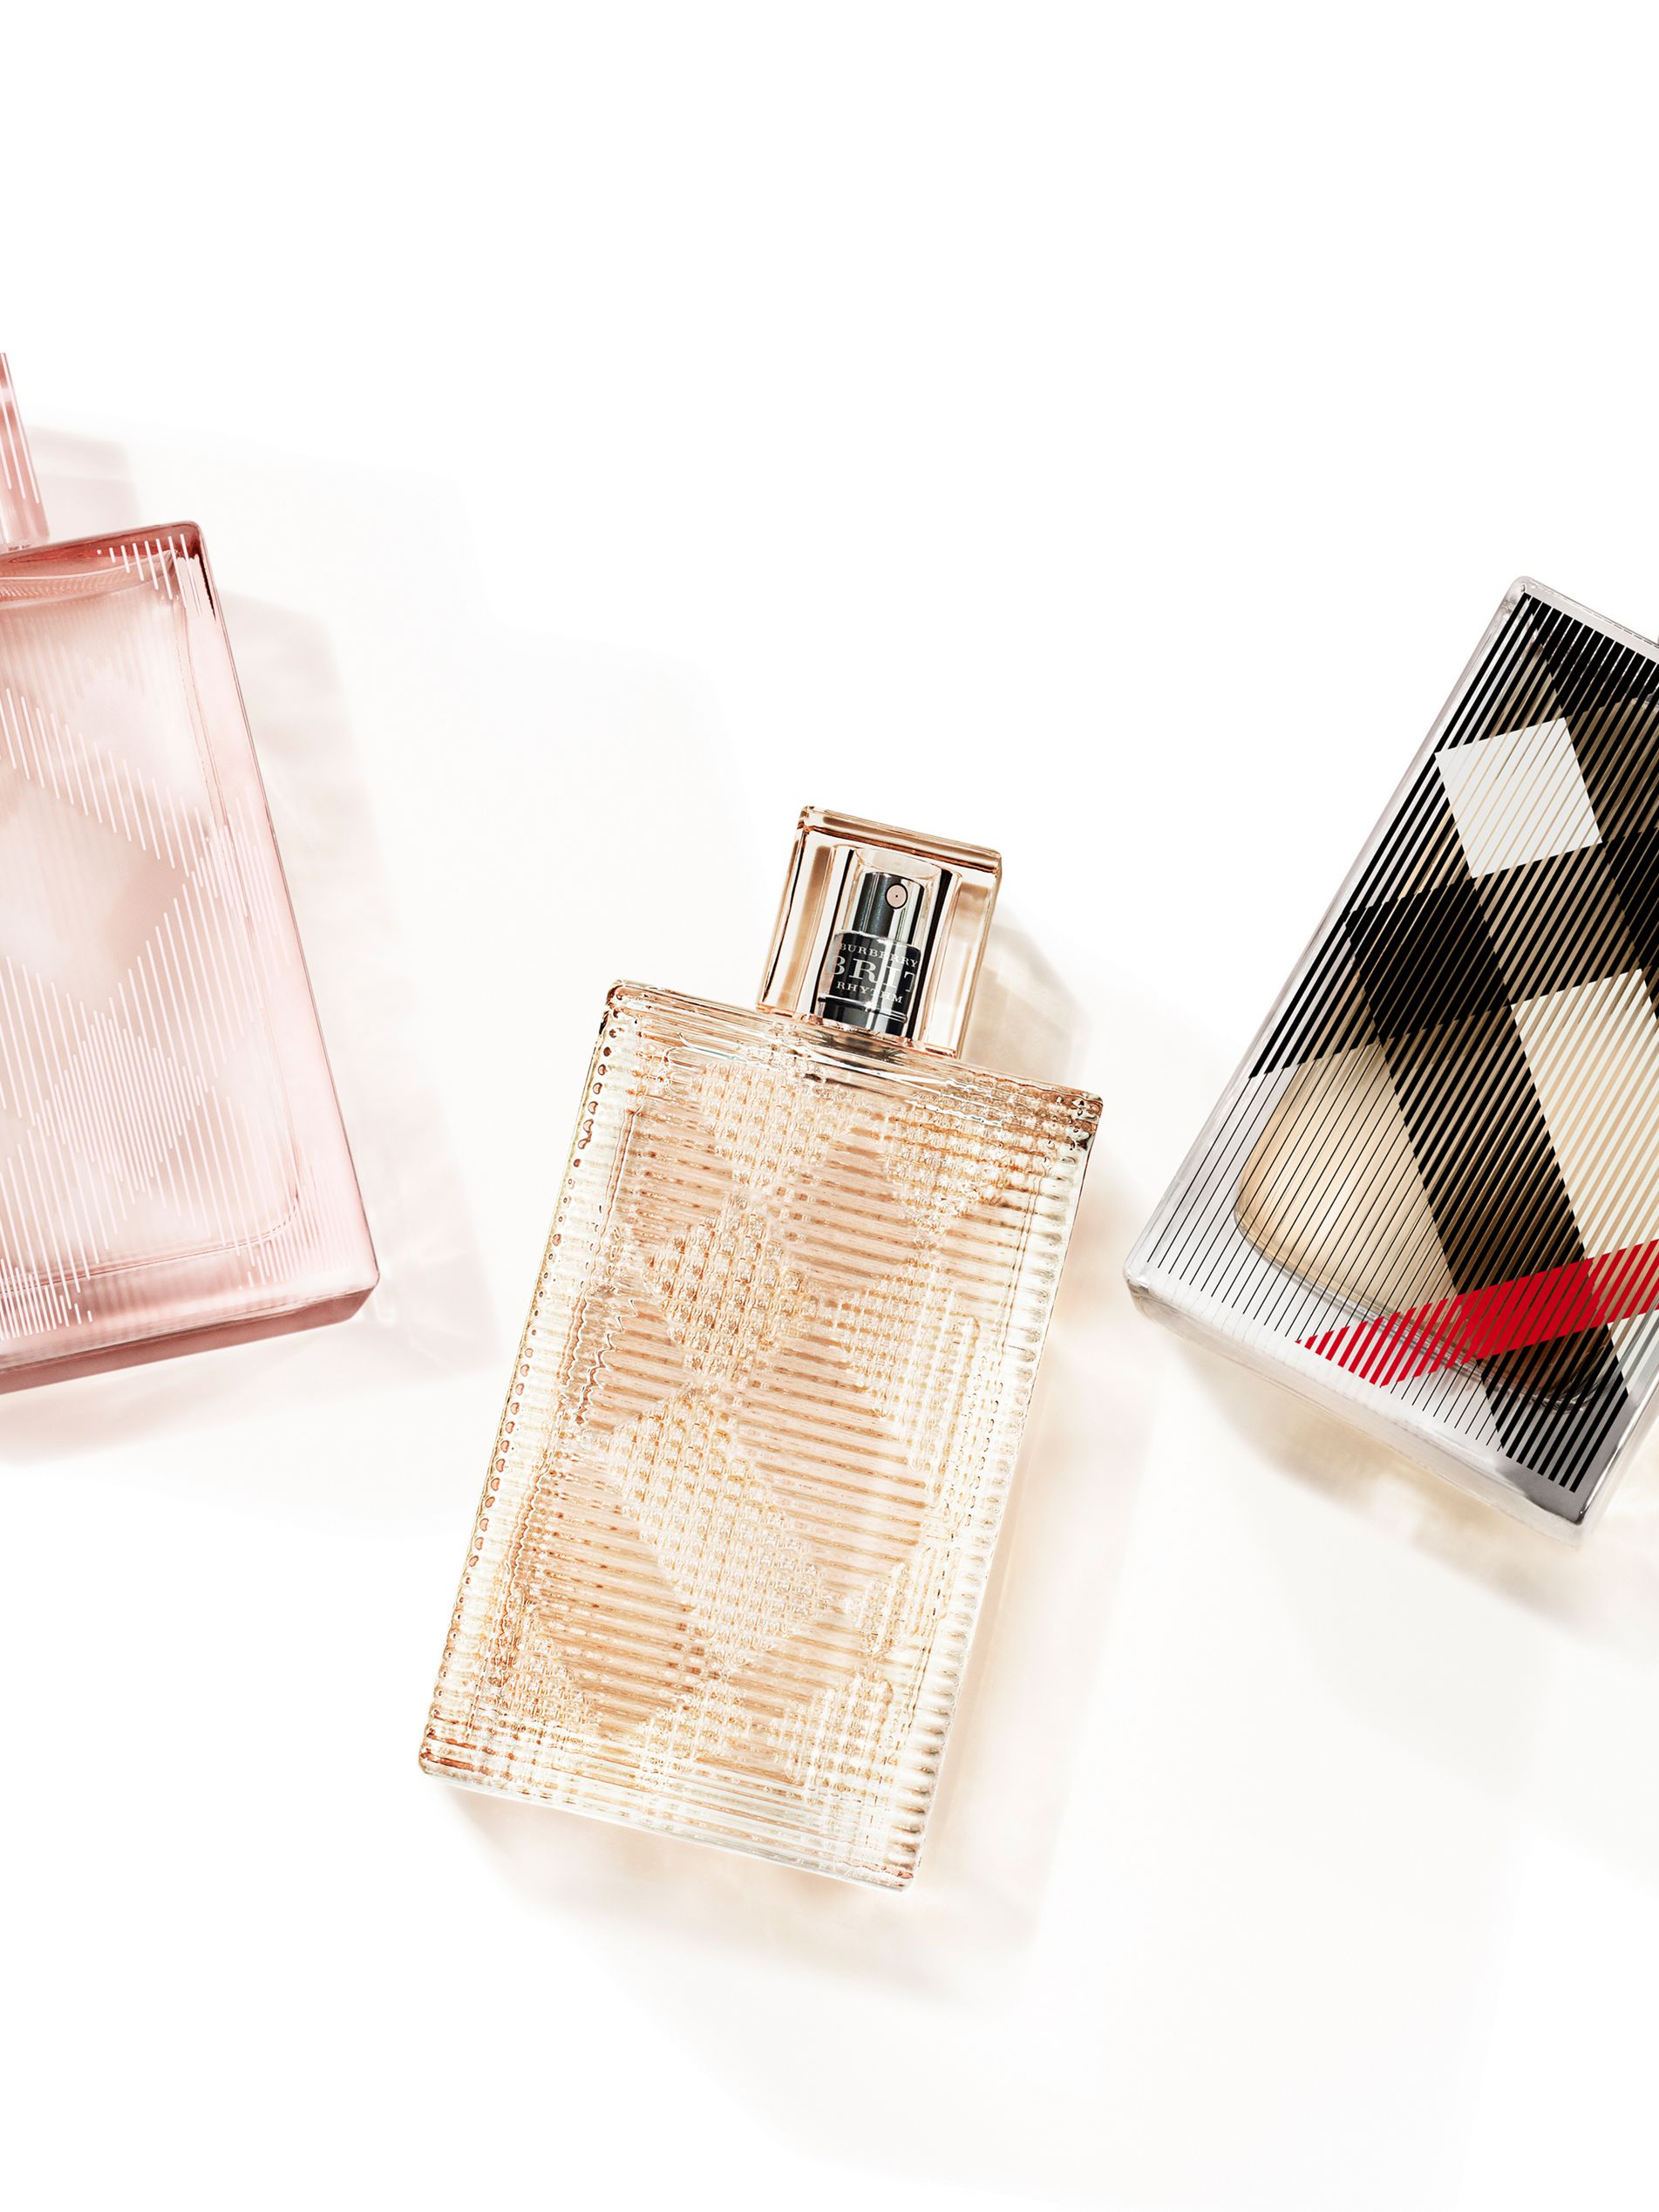 Burberry Brit Sheer 博柏利红粉恋歌女士香氛 100ml 产品图片11